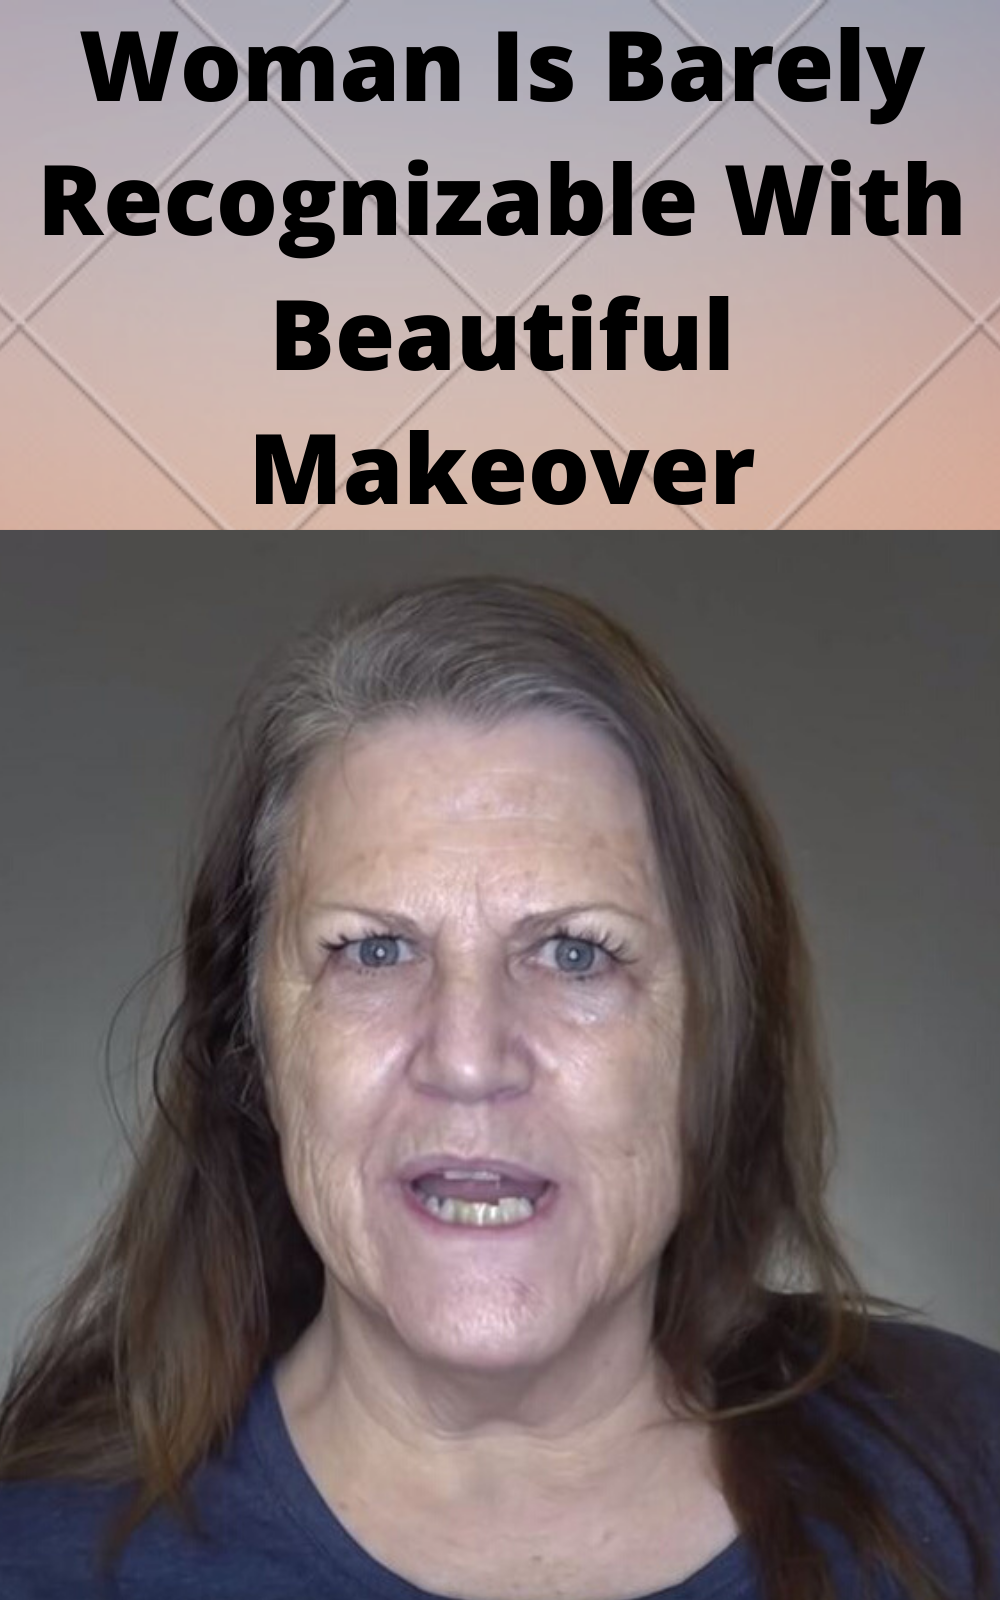 Woman Is Barely Recognizable With Beautiful Makeov